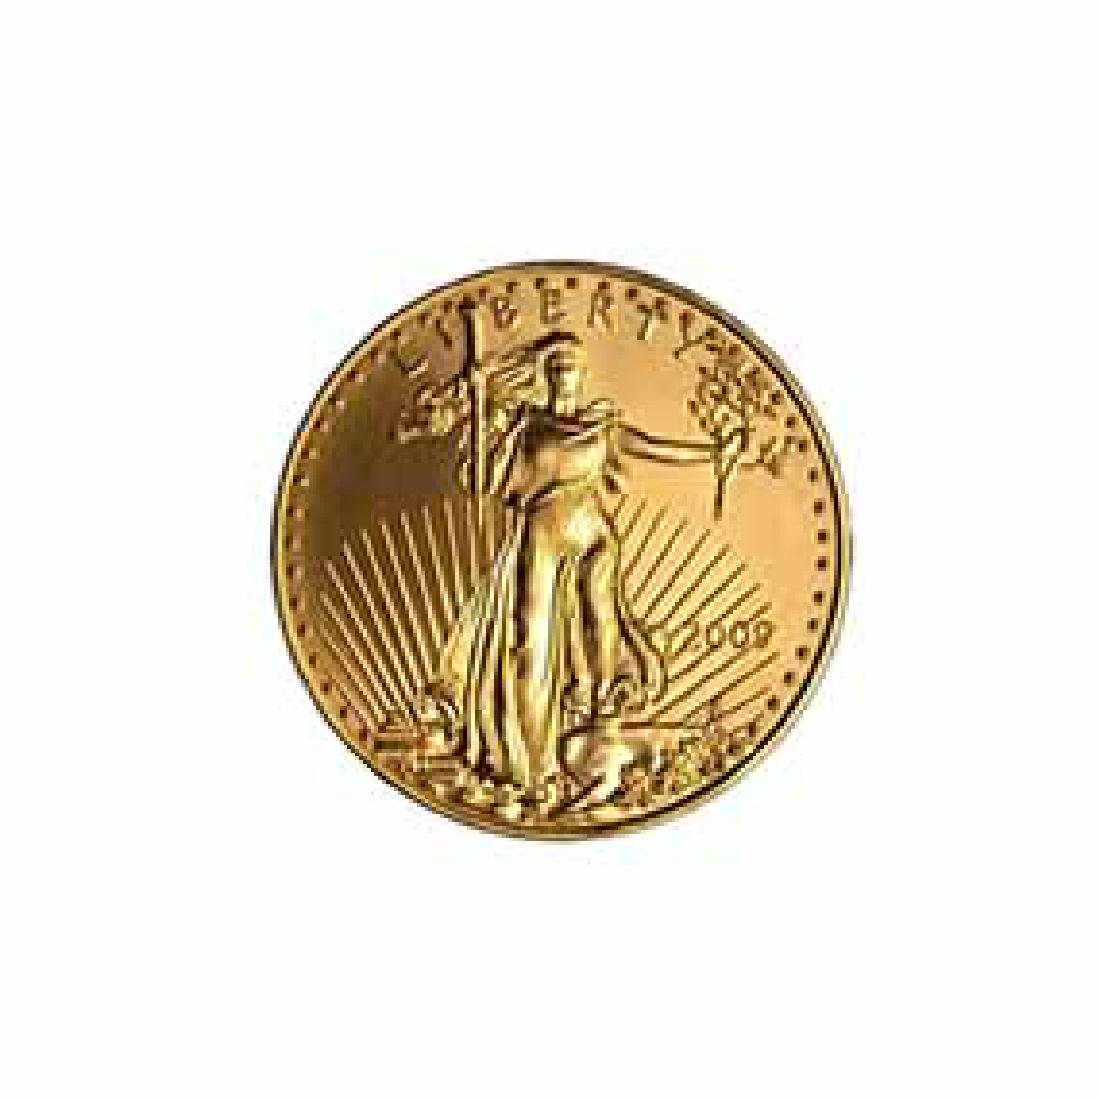 2009 American Gold Eagle 1/10 oz Uncirculated